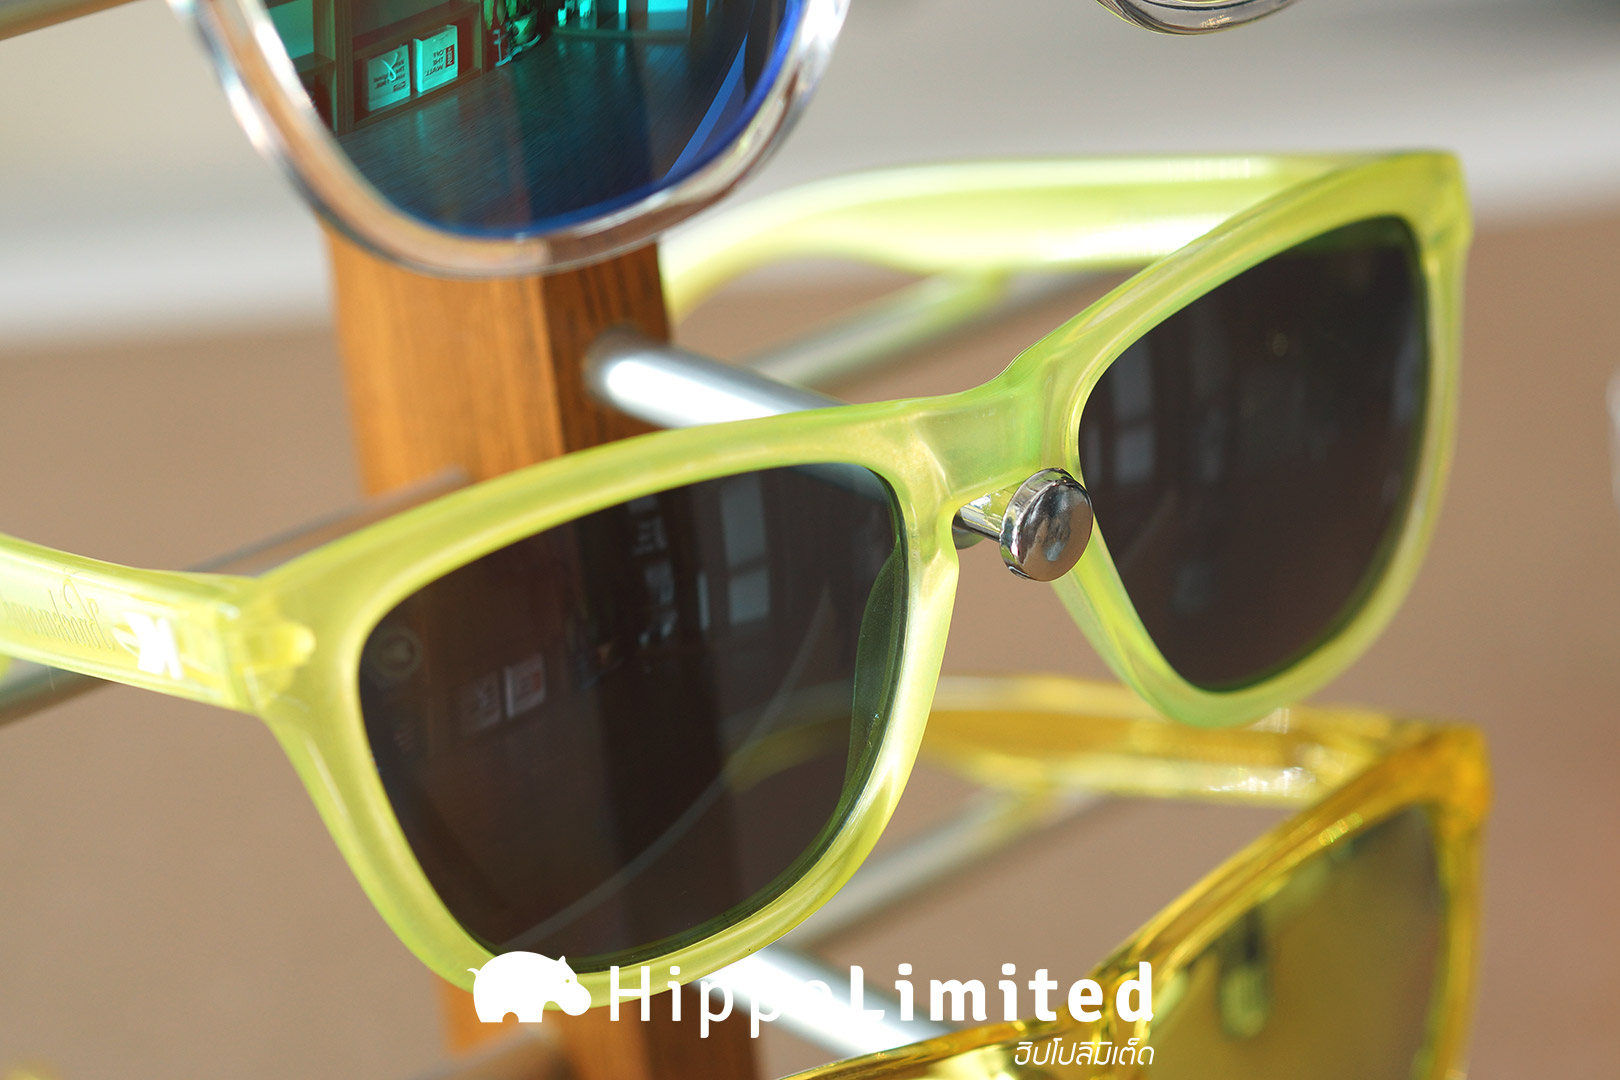 แว่น Knockaround Premiums Sunglasses - Citrus / Smoke